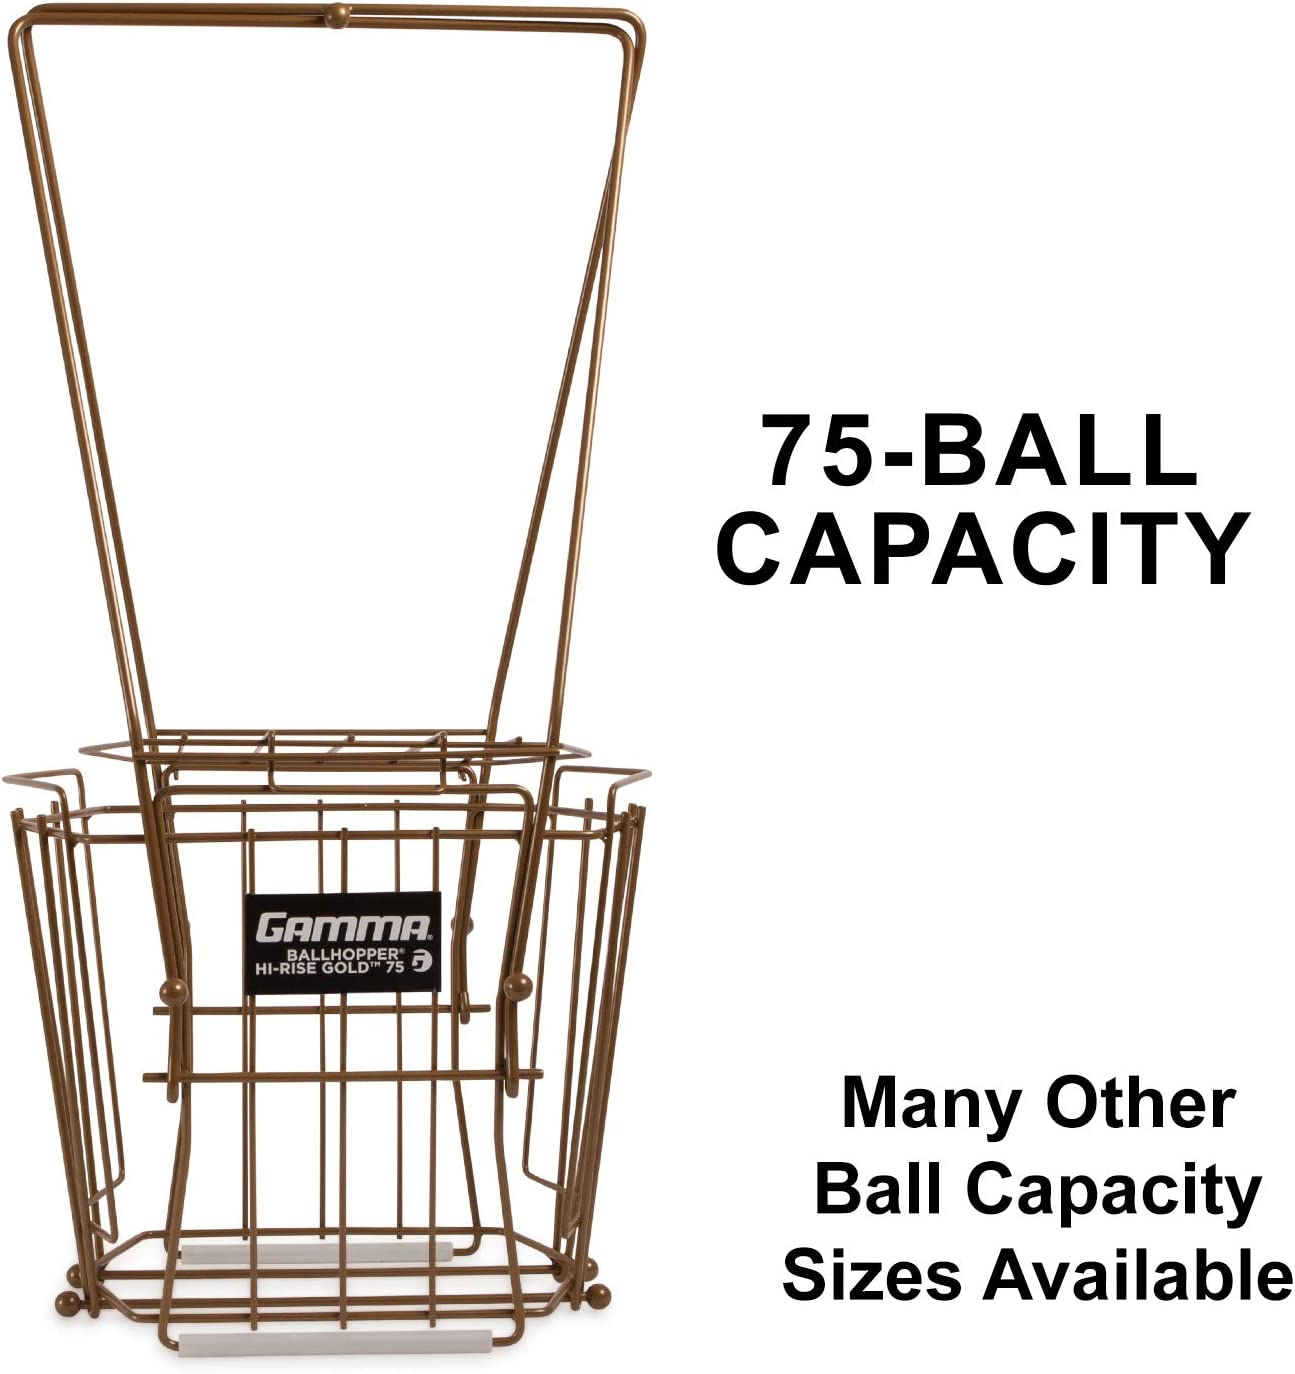 Gamma Sports Ballhopper Premium Pro 75 HiRise Gold Tennis Ball Pickup – Professional & Heavy Duty Floating Wire Design, Weather-resistant Durable Coating, Hinged Lid to Prevent Spilling, Convenient Handles, Holds 75 Balls : Tennis Ball Hoppers : Sports & Outdoors